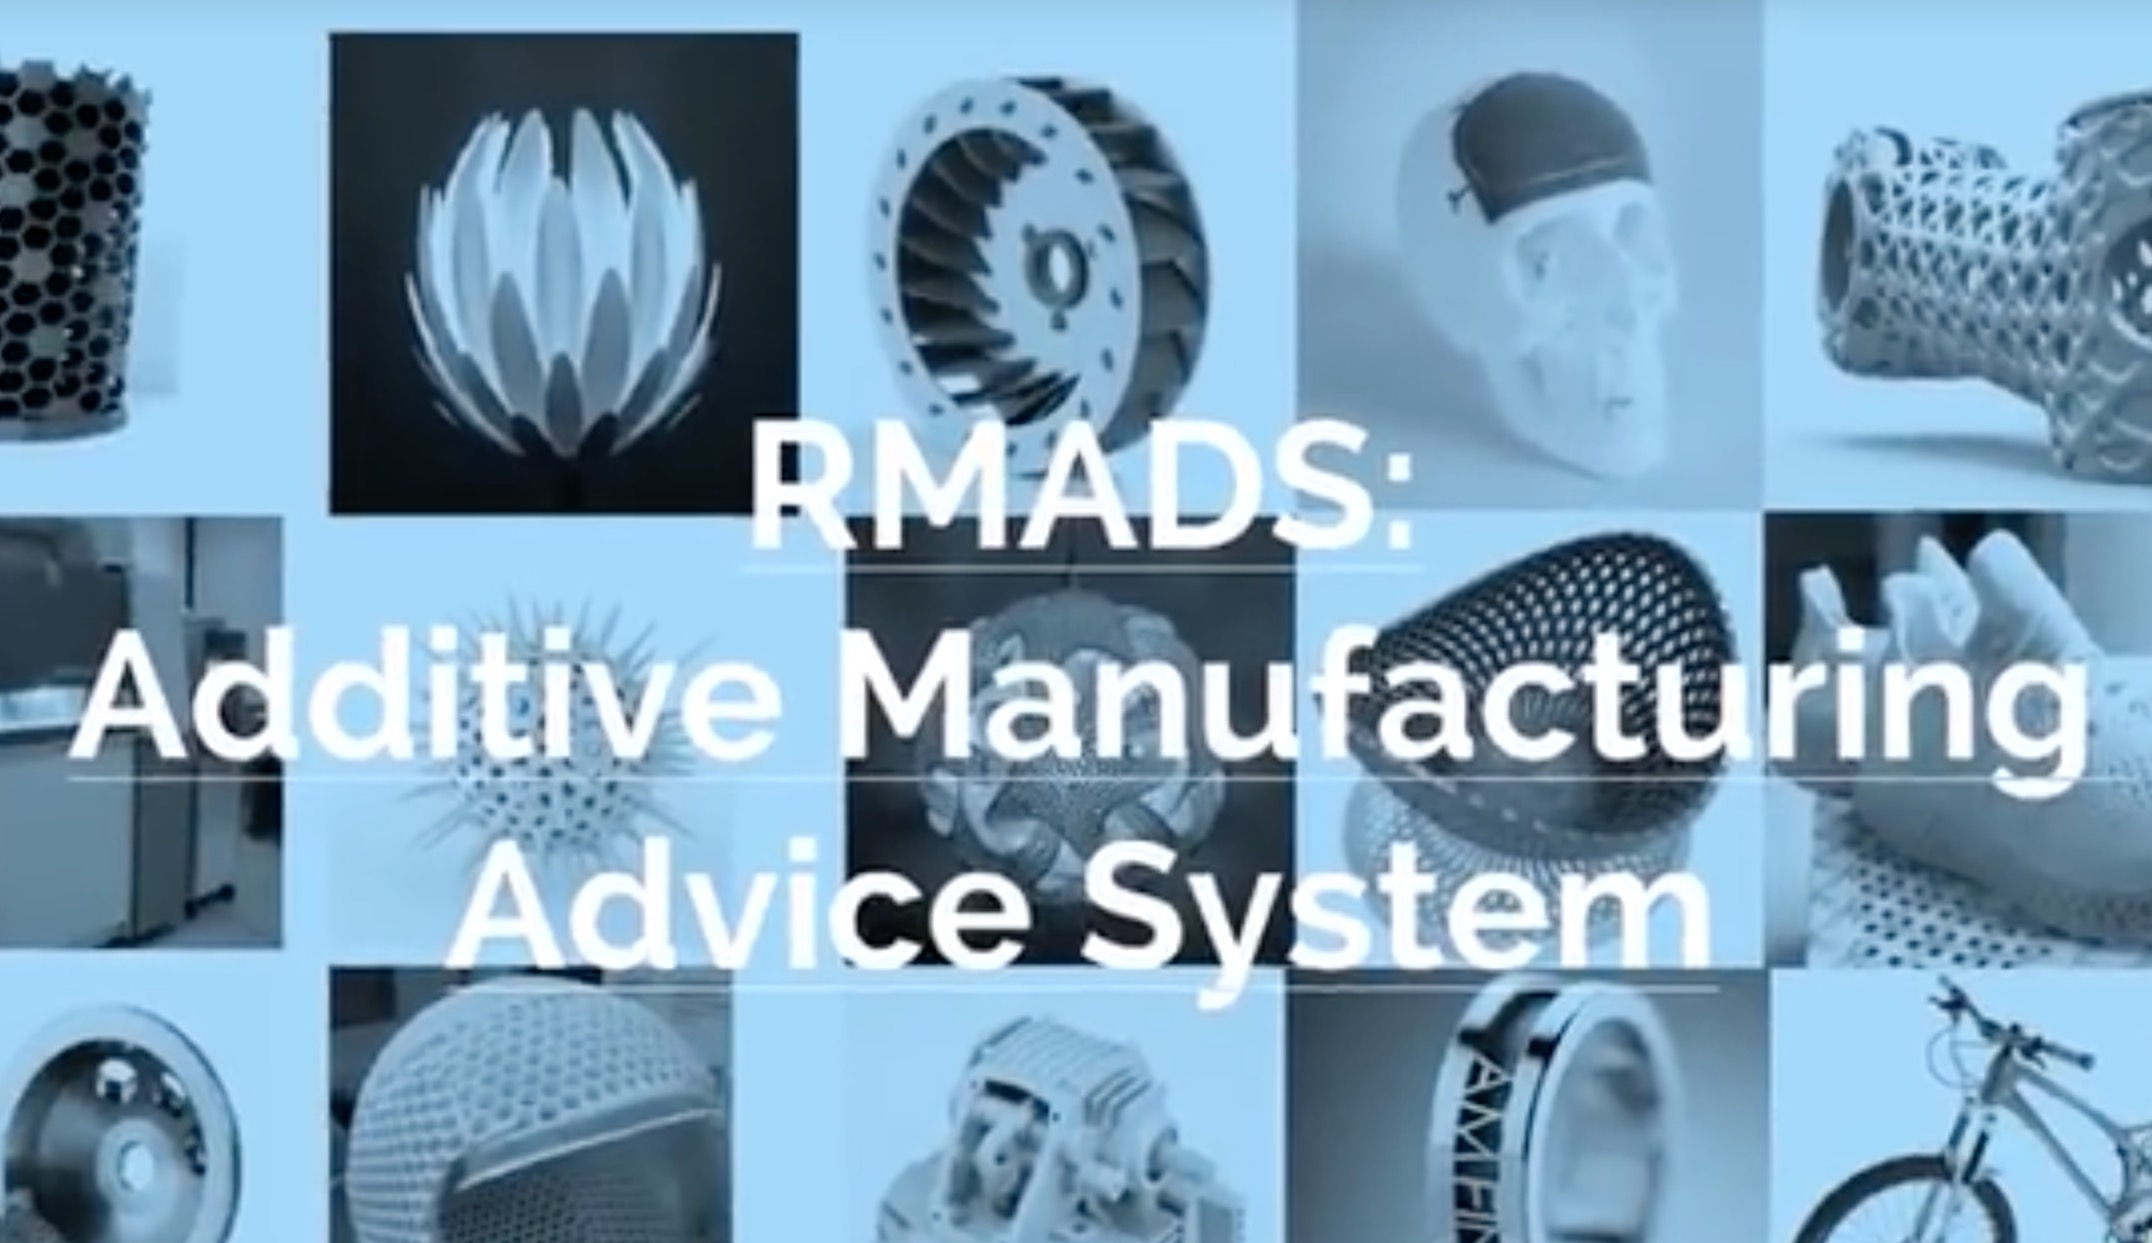 RMADS: Rapid Manufacturing Advice System